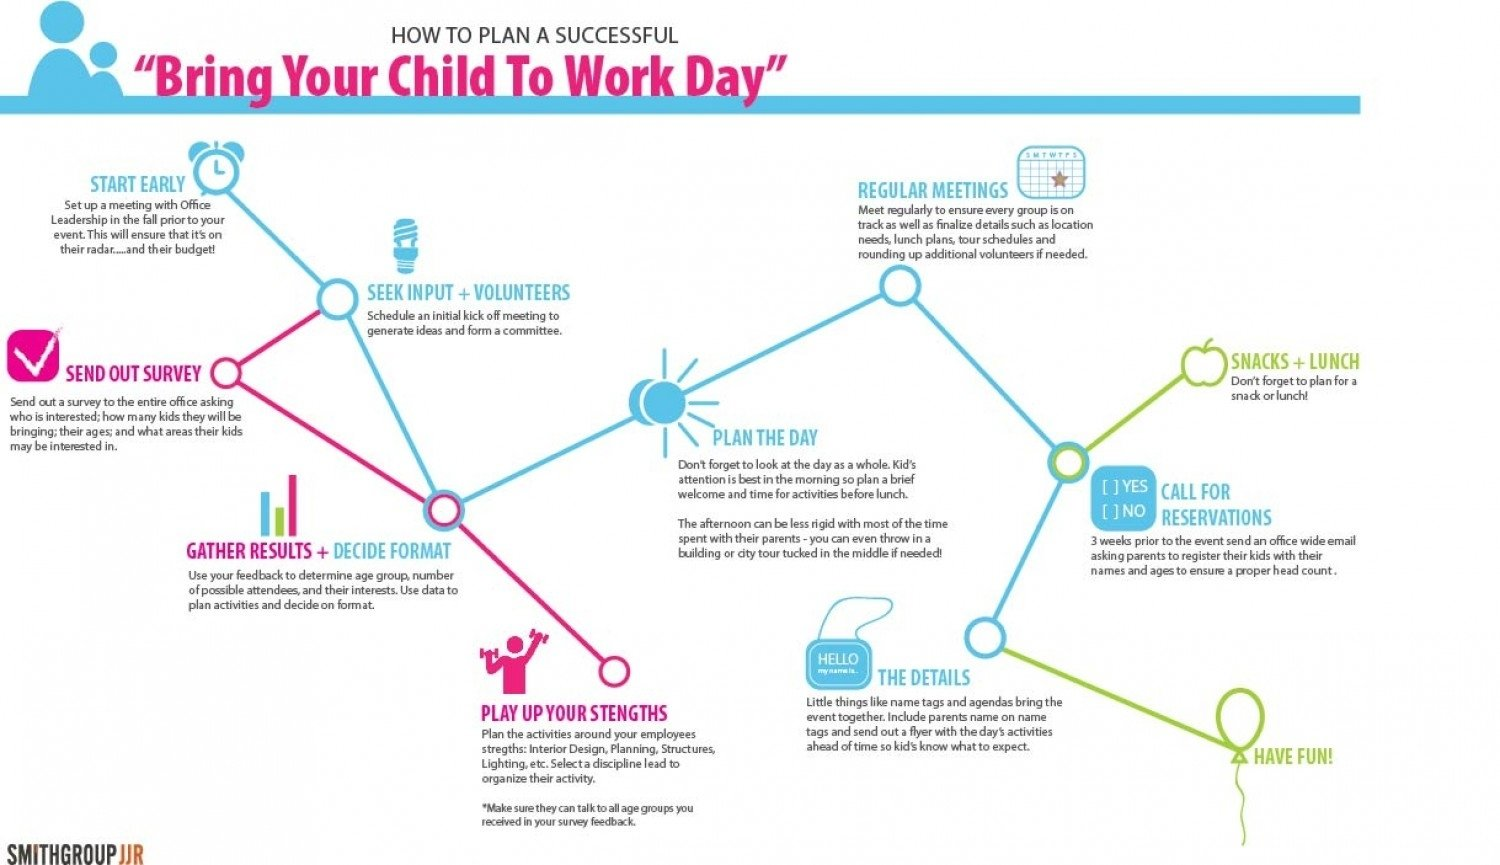 10 Wonderful Take Your Child To Work Day Ideas how to plan a successful bring your child to work day visual ly 1